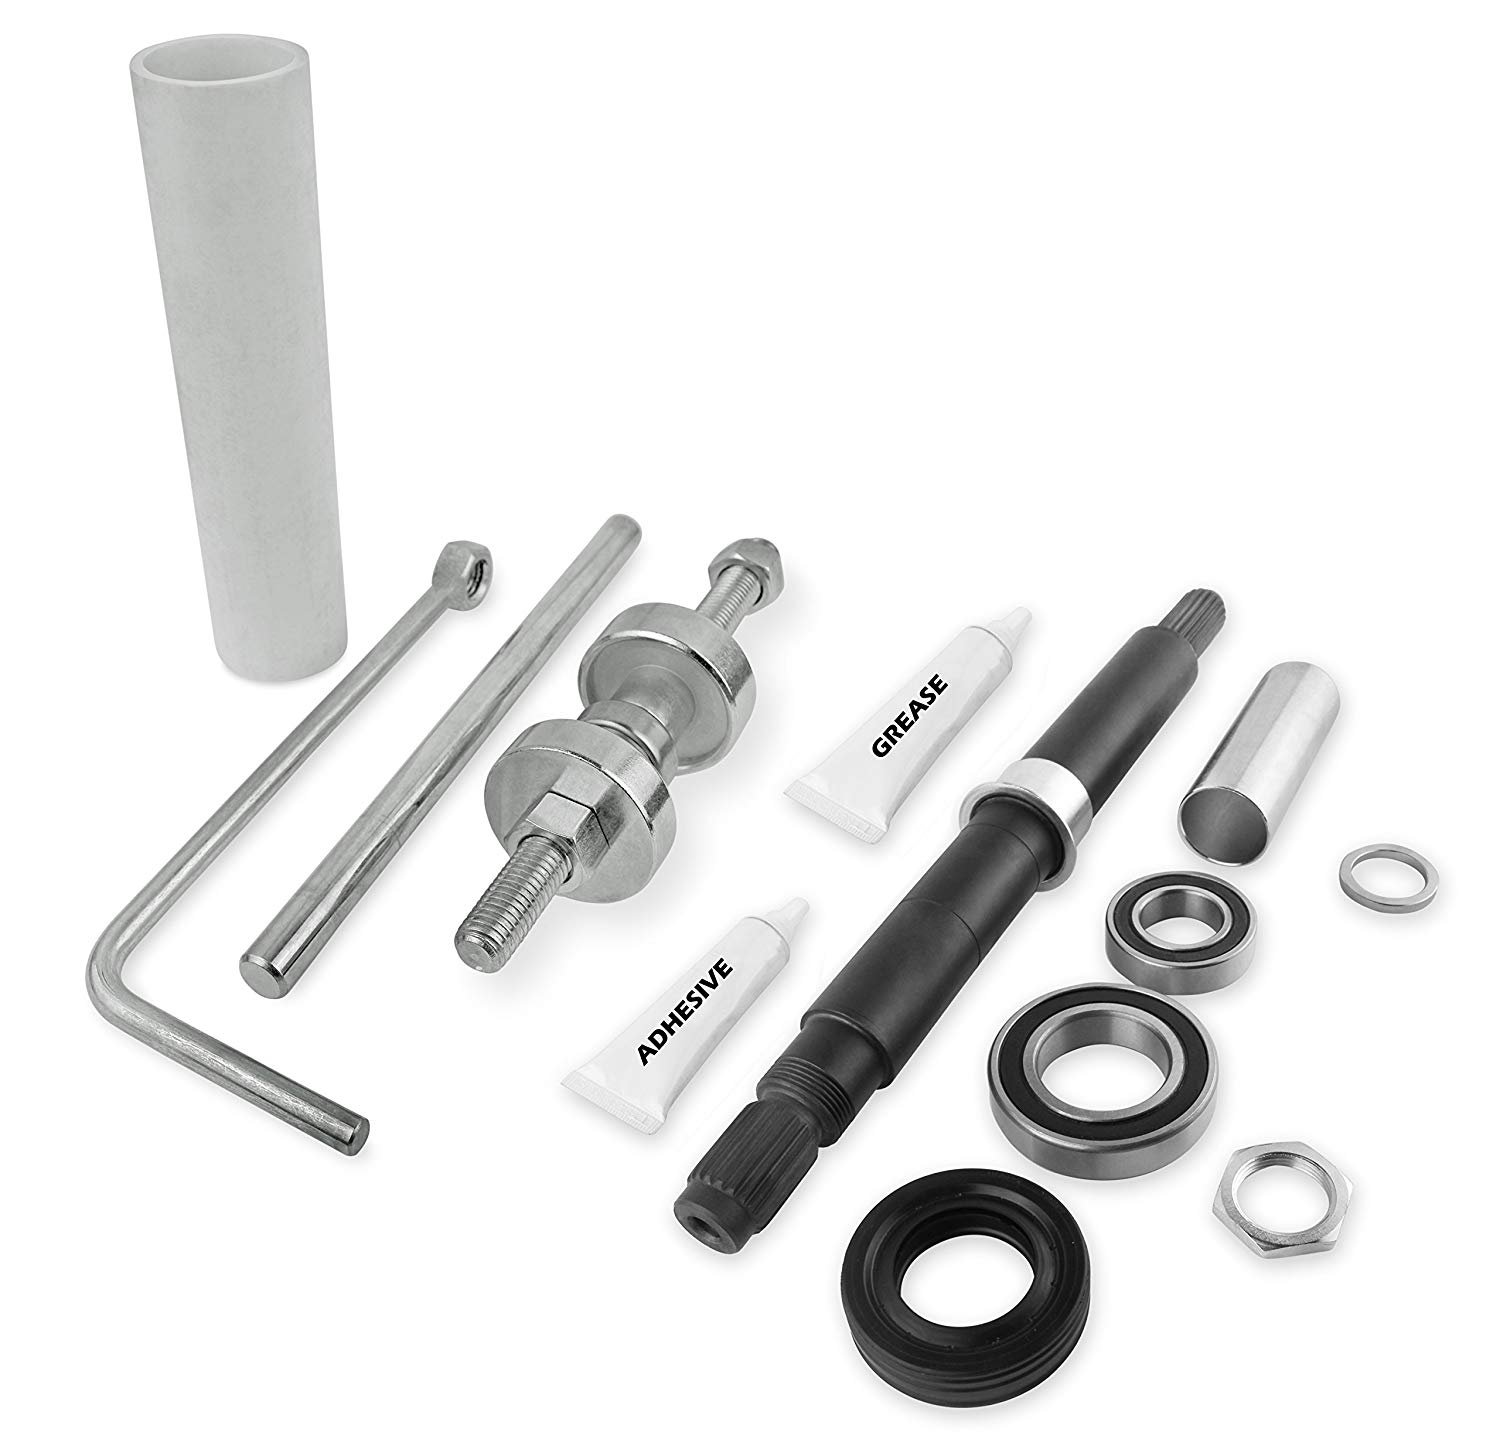 NEW W10447783 Tool Kit and W10435302 Bearing Assembly, COMPLETE PACKAGE, 2119011, W10435274, W10435285,- 1 YEAR WARRANTY